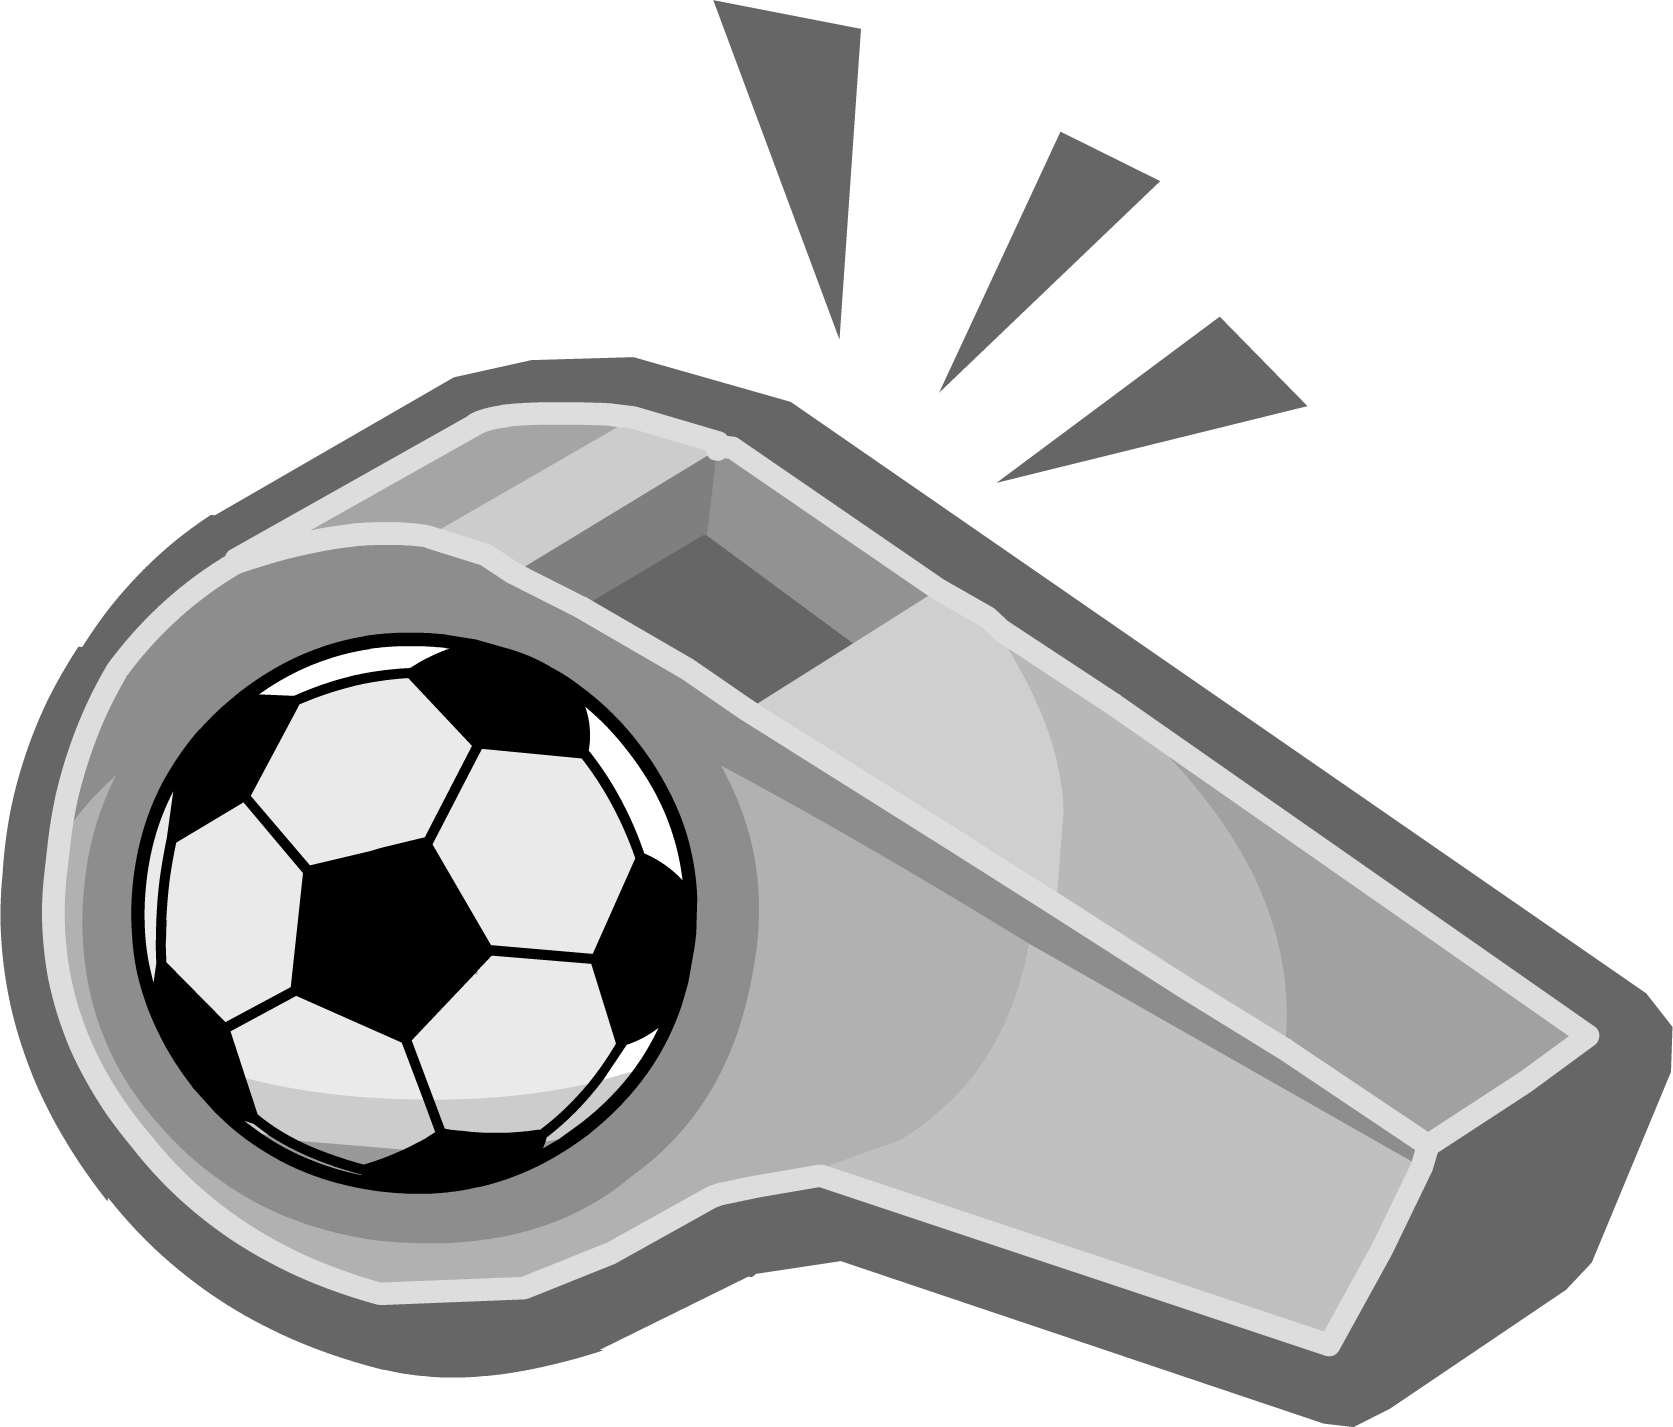 PNG Whistle - 53787